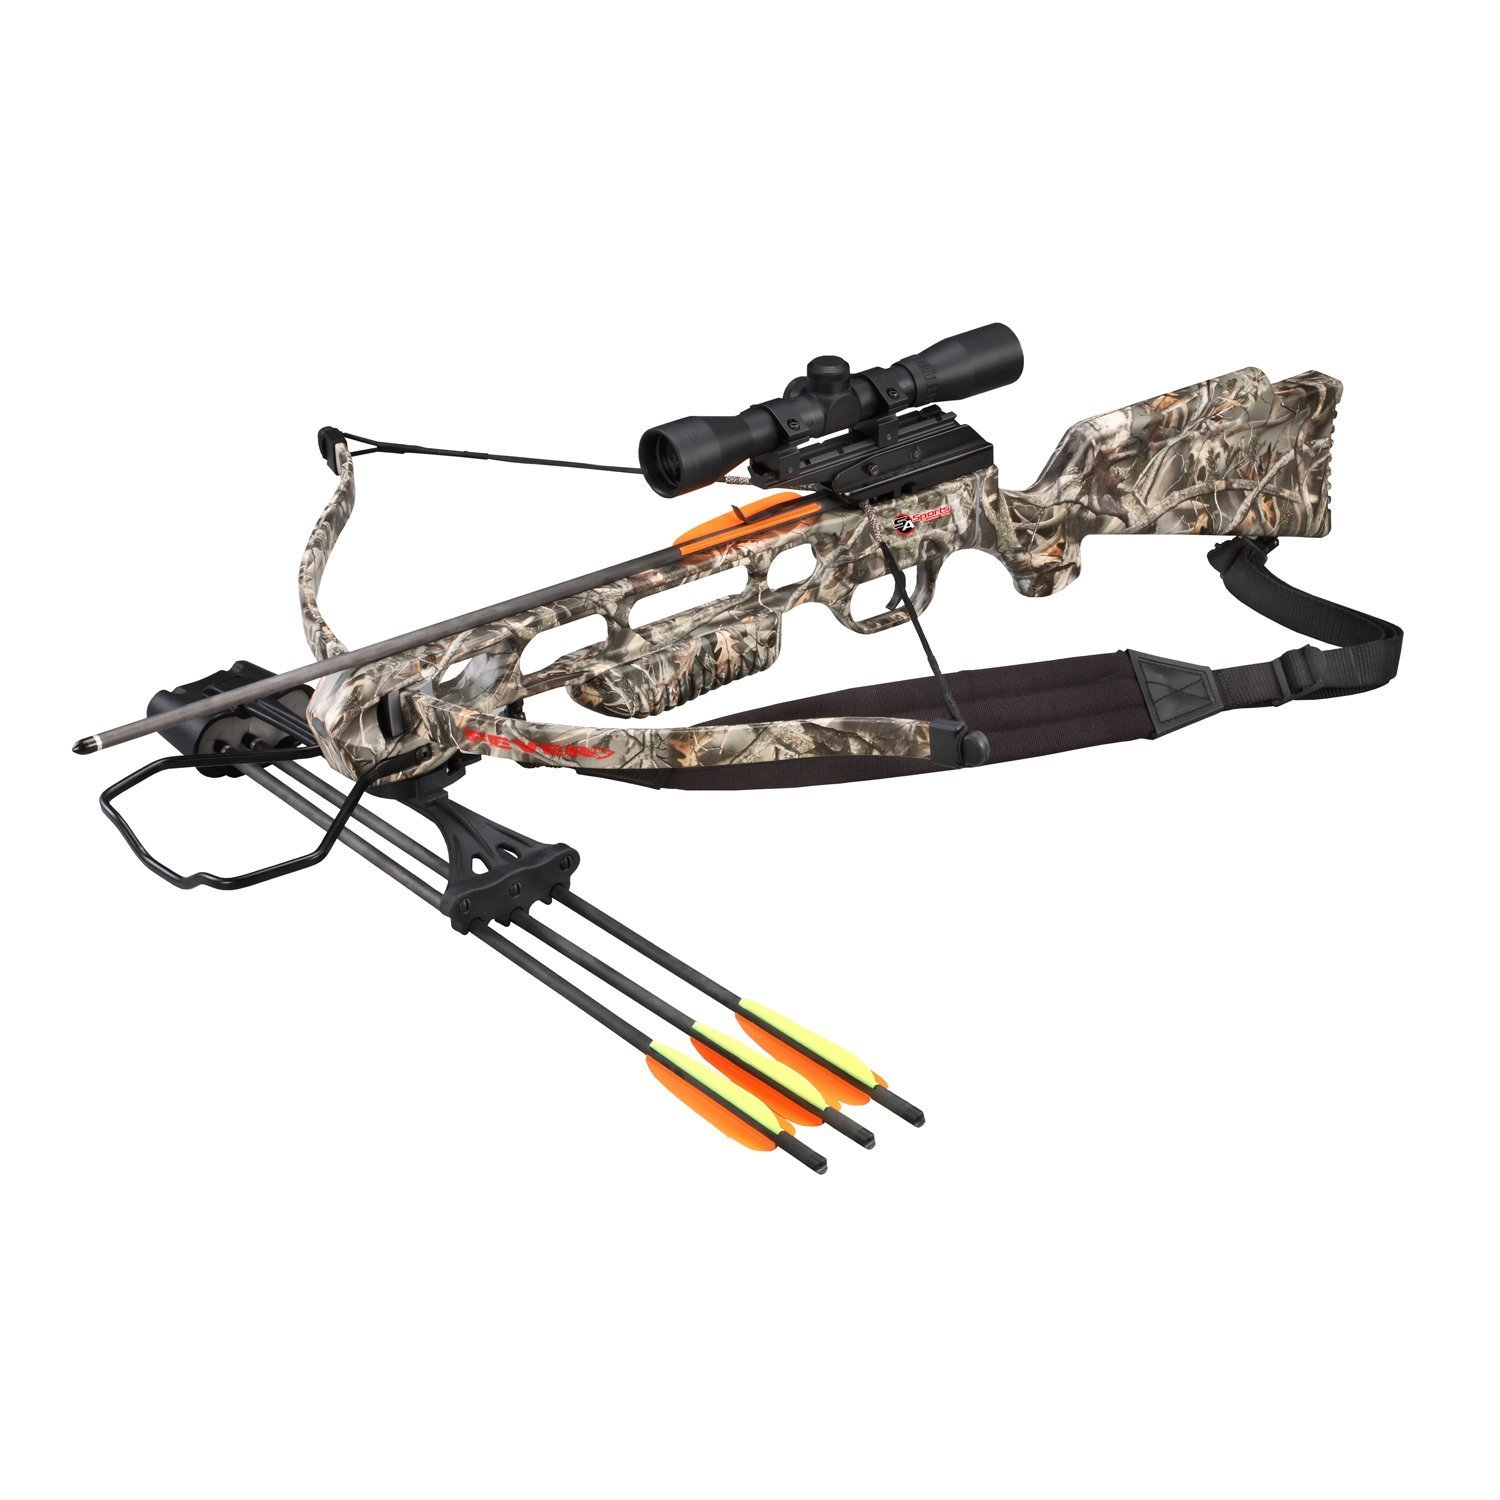 SA Sports Fever Crossbow Package Review